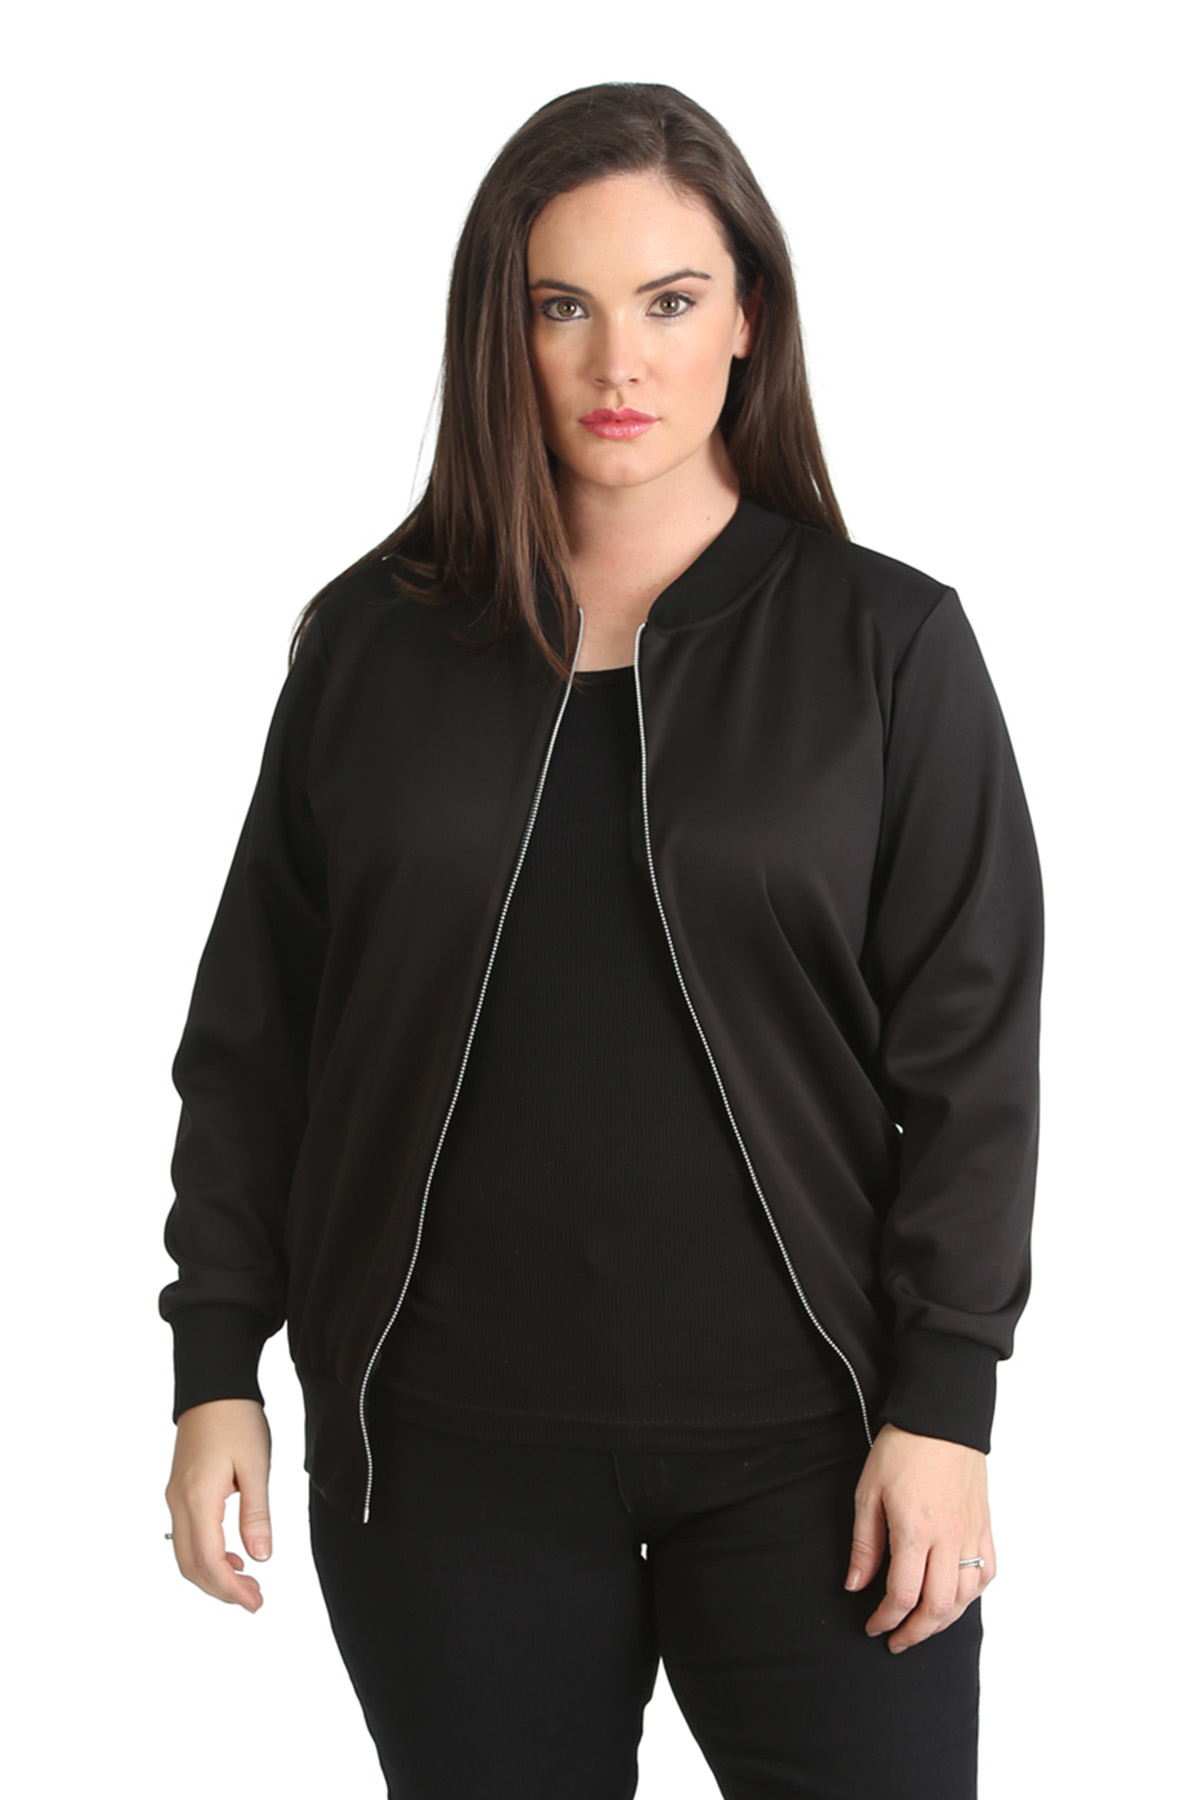 90363add28c Details about New Ladies Plus Size Bomber Jacket Womens Plain Ribbed Warm  Zip Varsity Nouvelle